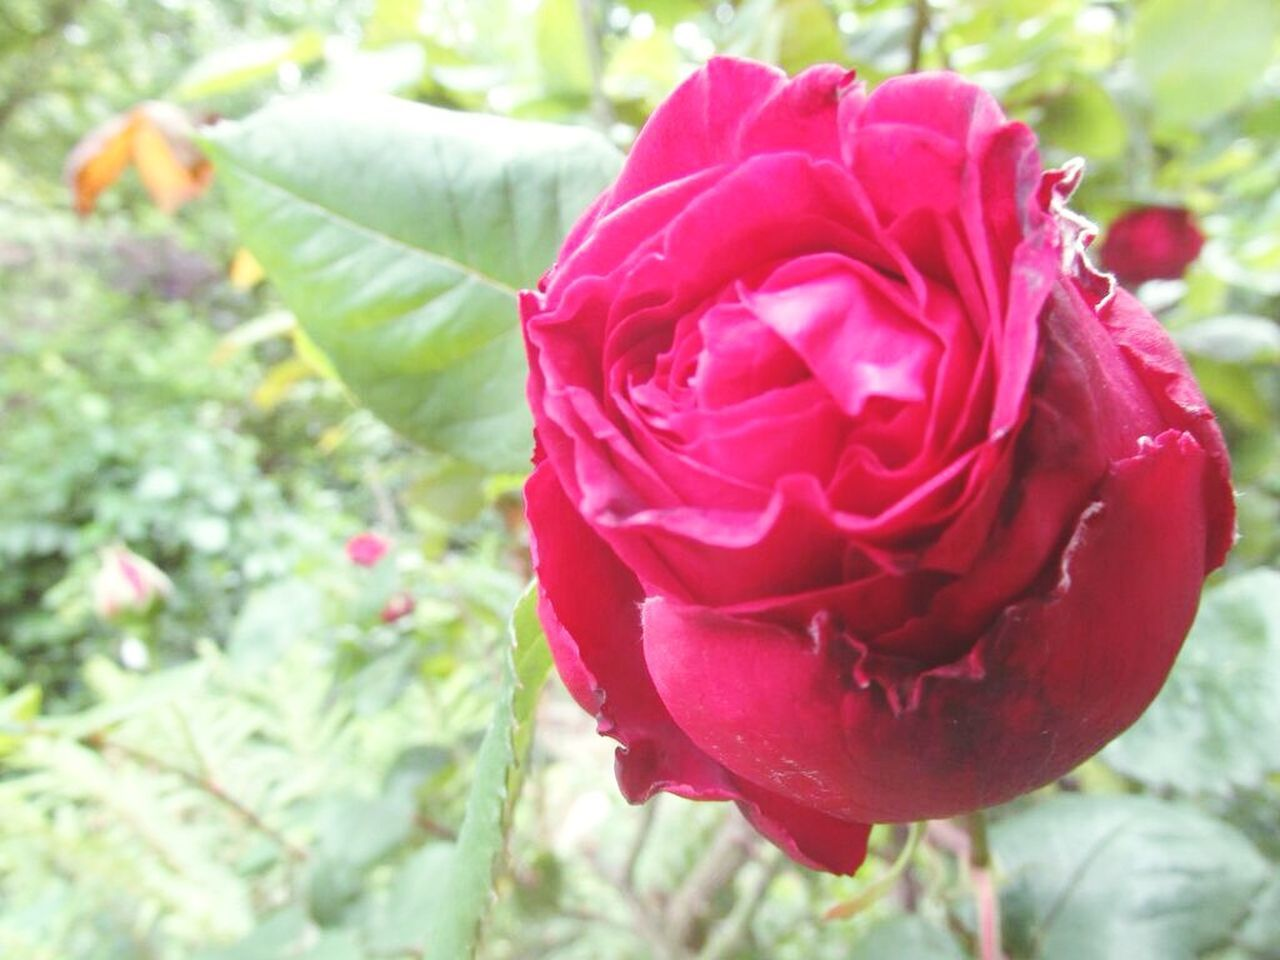 flower, nature, petal, fragility, beauty in nature, growth, freshness, close-up, flower head, rose - flower, day, plant, outdoors, no people, leaf, red, blooming